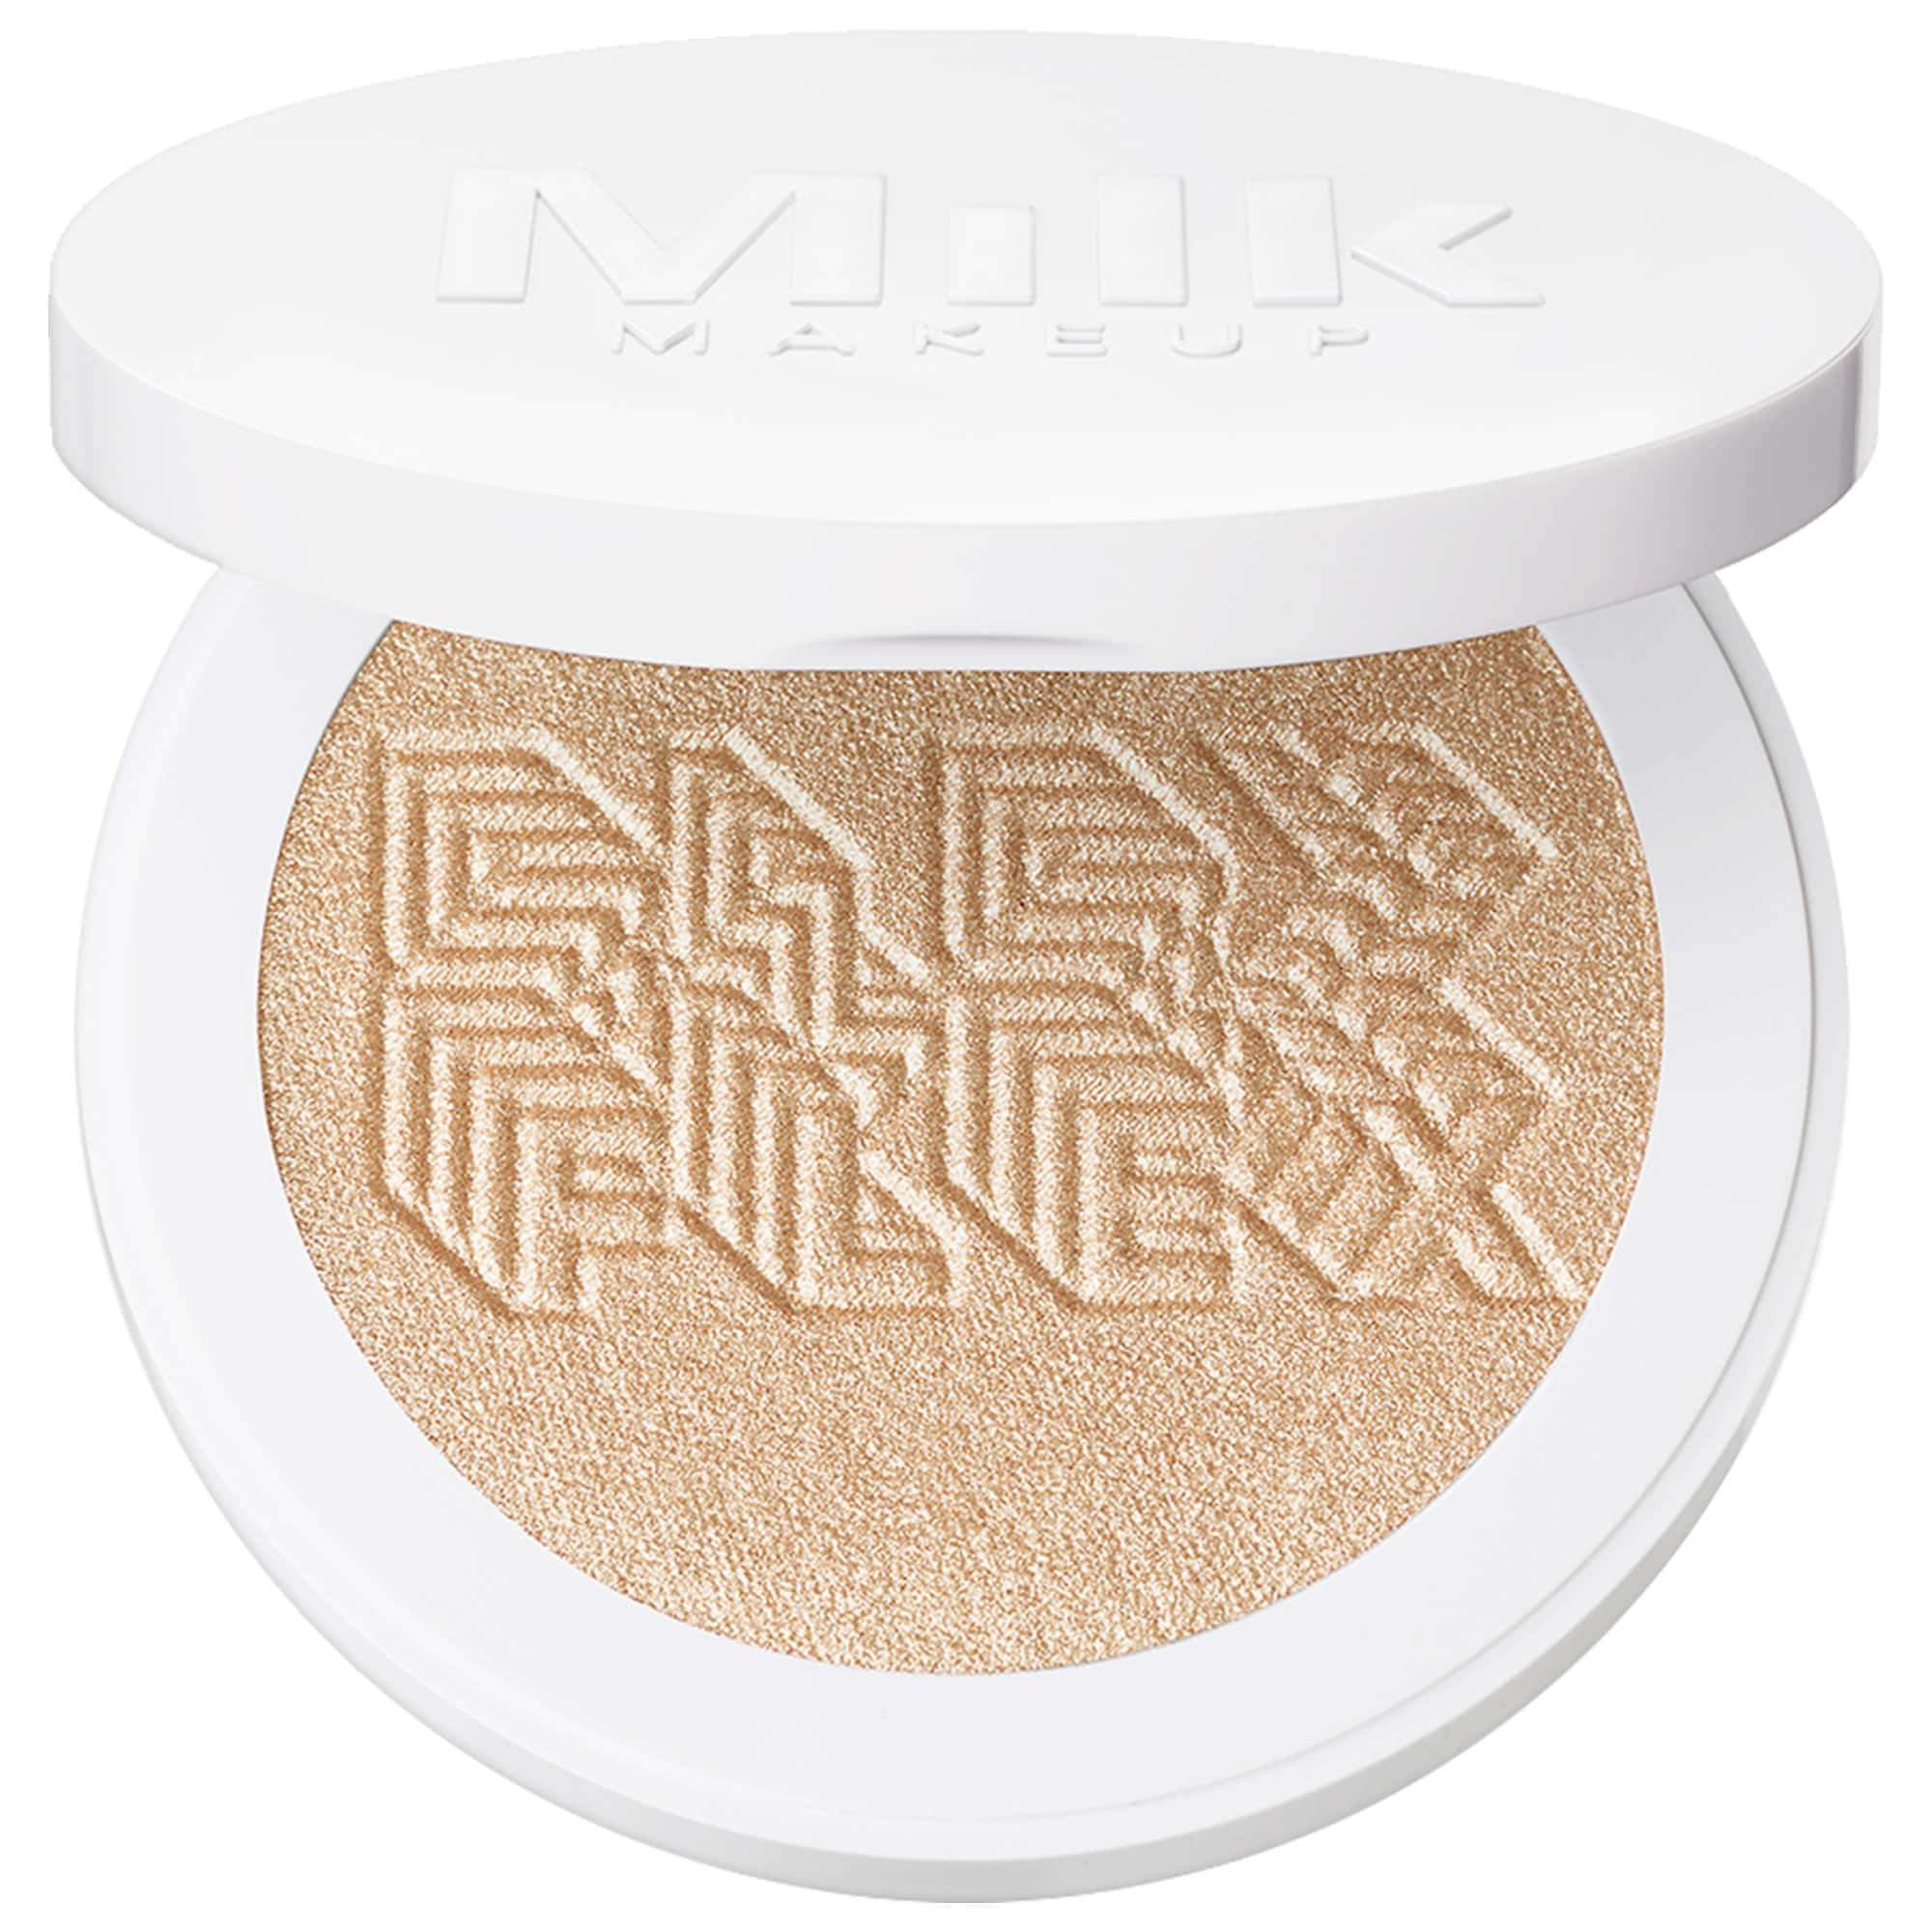 Milk Makeup highlighter MILK MAKEUP Flex Highlighter - Iced, 6.24g